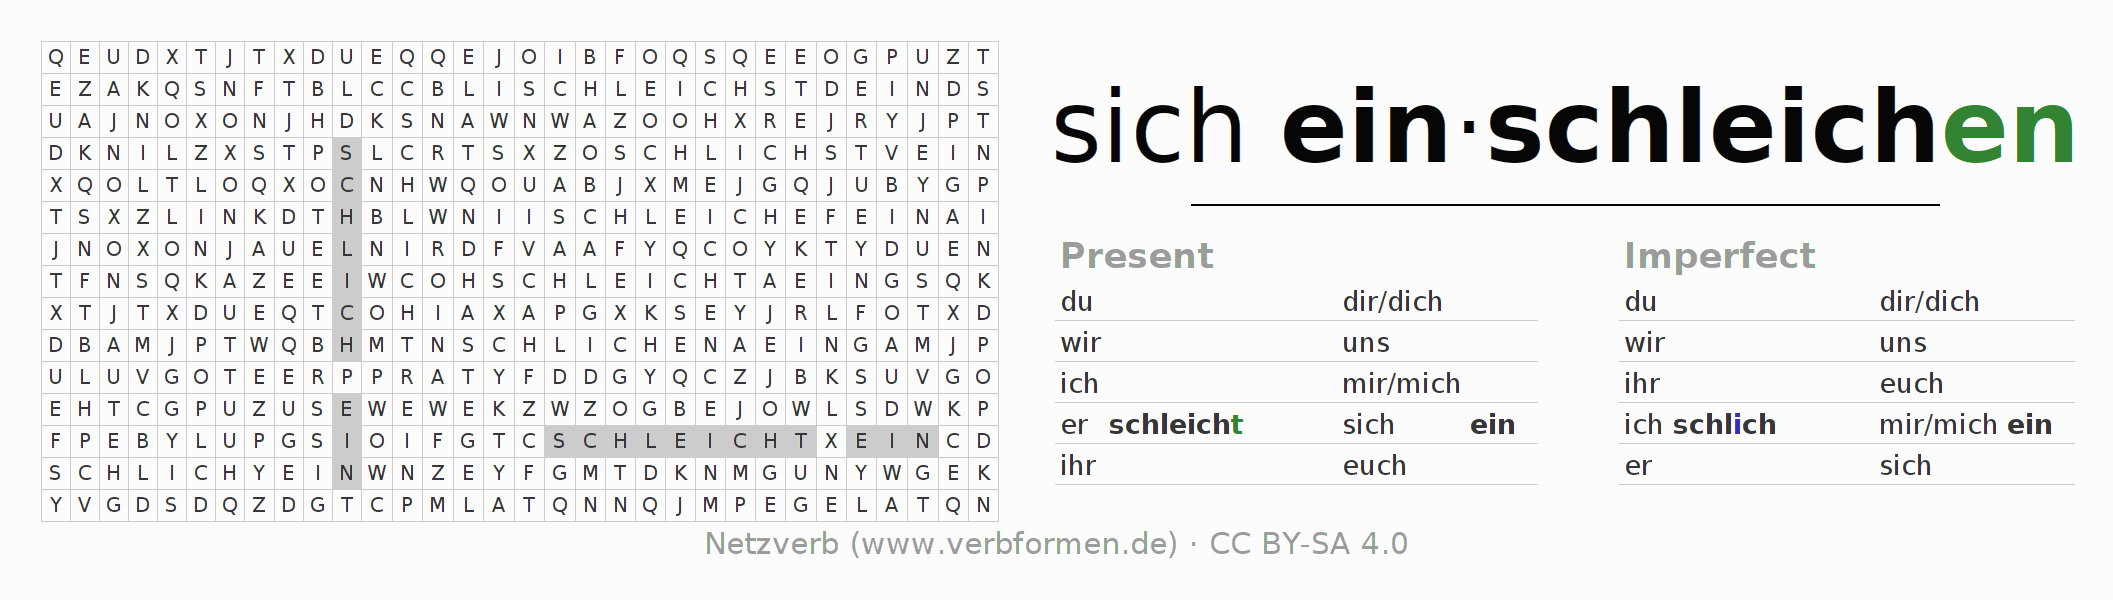 Word search puzzle for the conjugation of the verb sich einschleichen